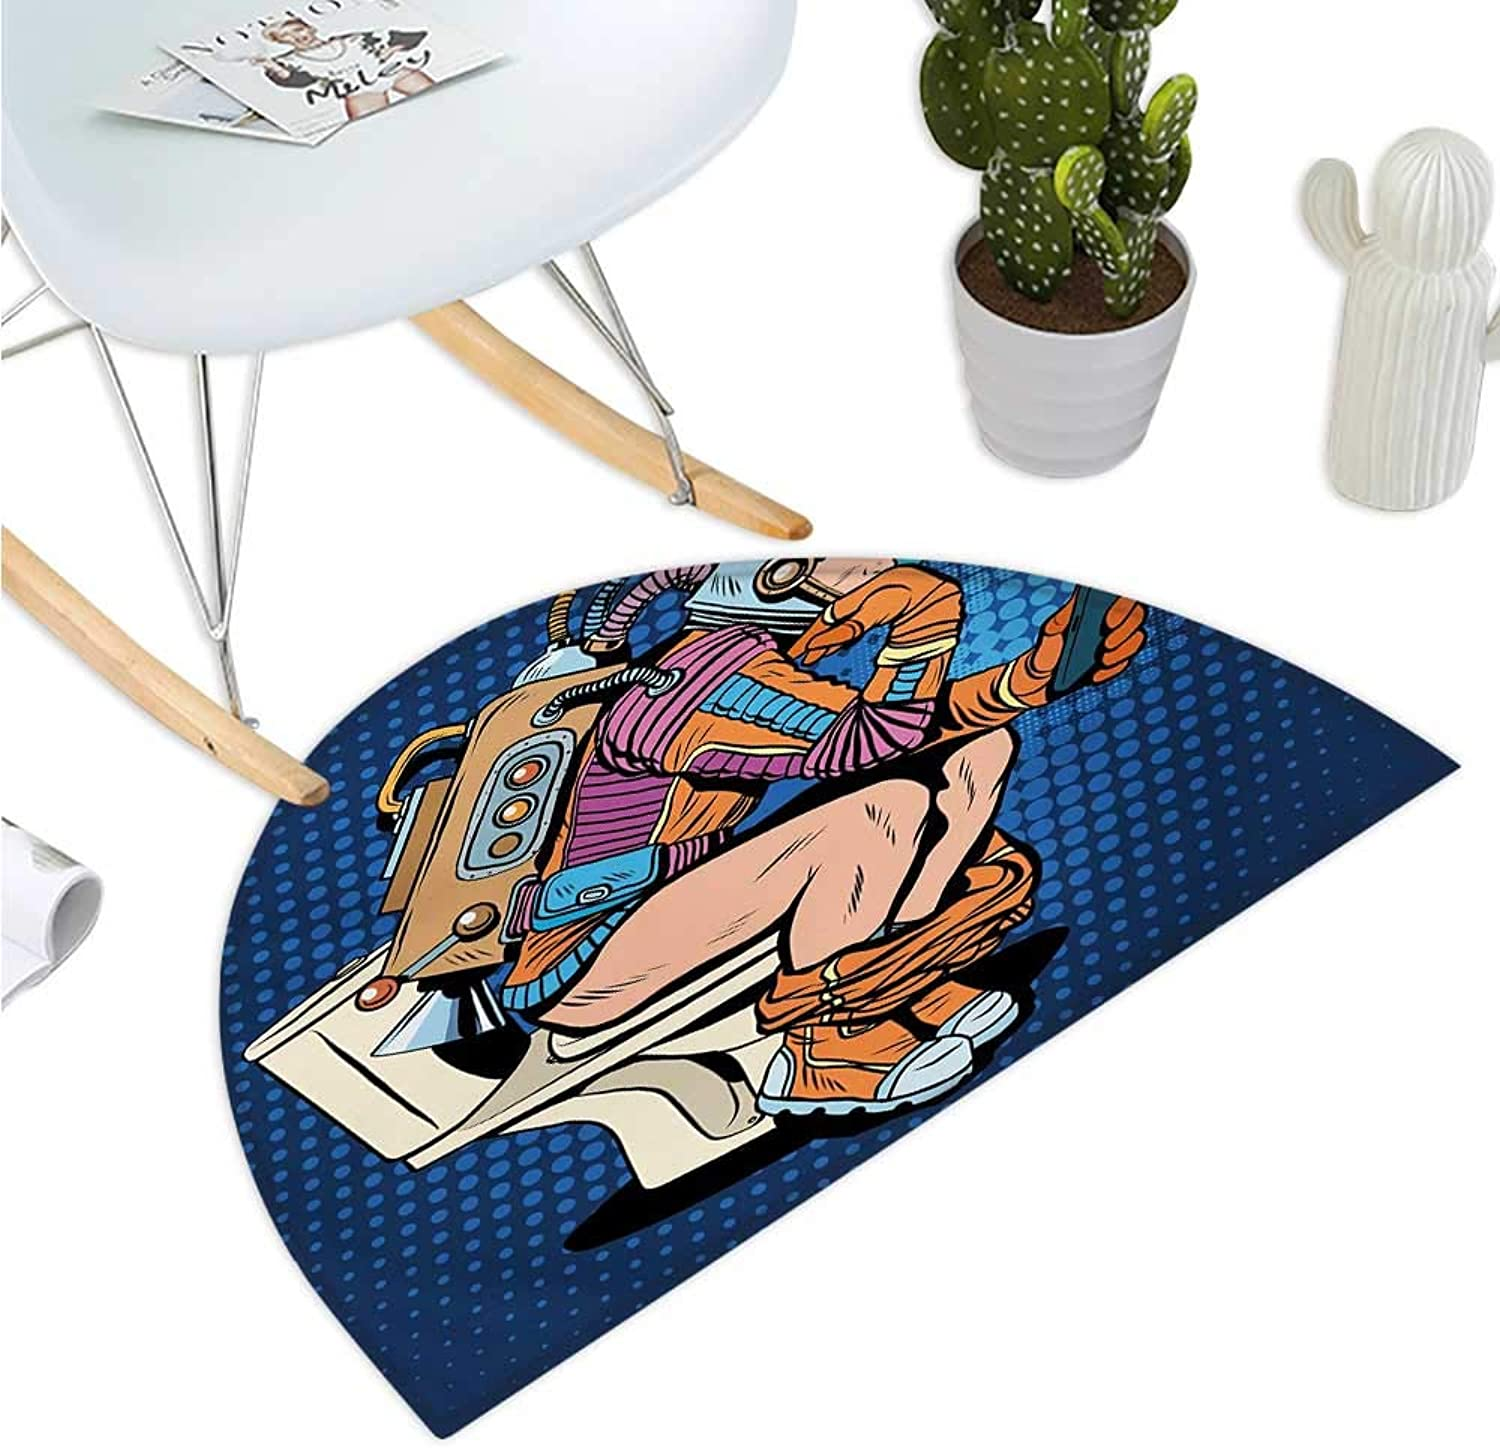 Astronaut Semicircle Doormat Futuristic Thinking Man with Smartphone on Toilet Wasting Time Playing Halfmoon doormats H 35.4  xD 53.1  Dark bluee Multicolor